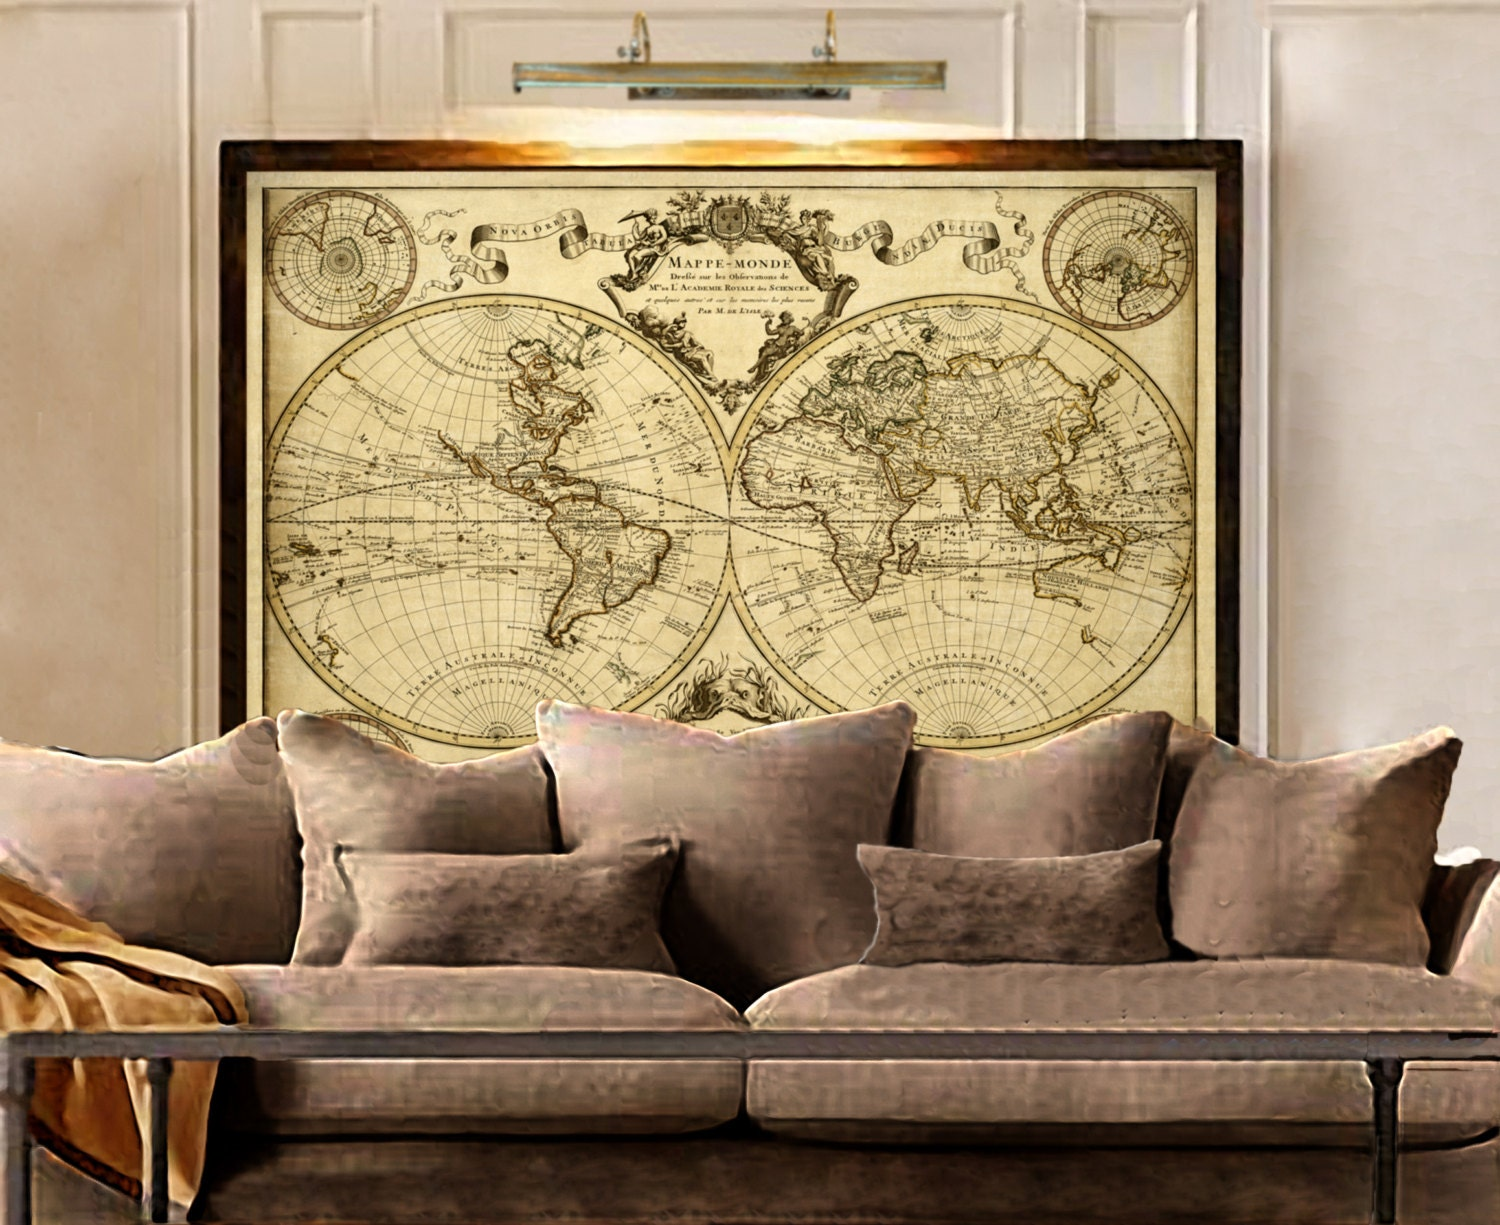 1720 old world map map art historic map antique style Vintage house decor